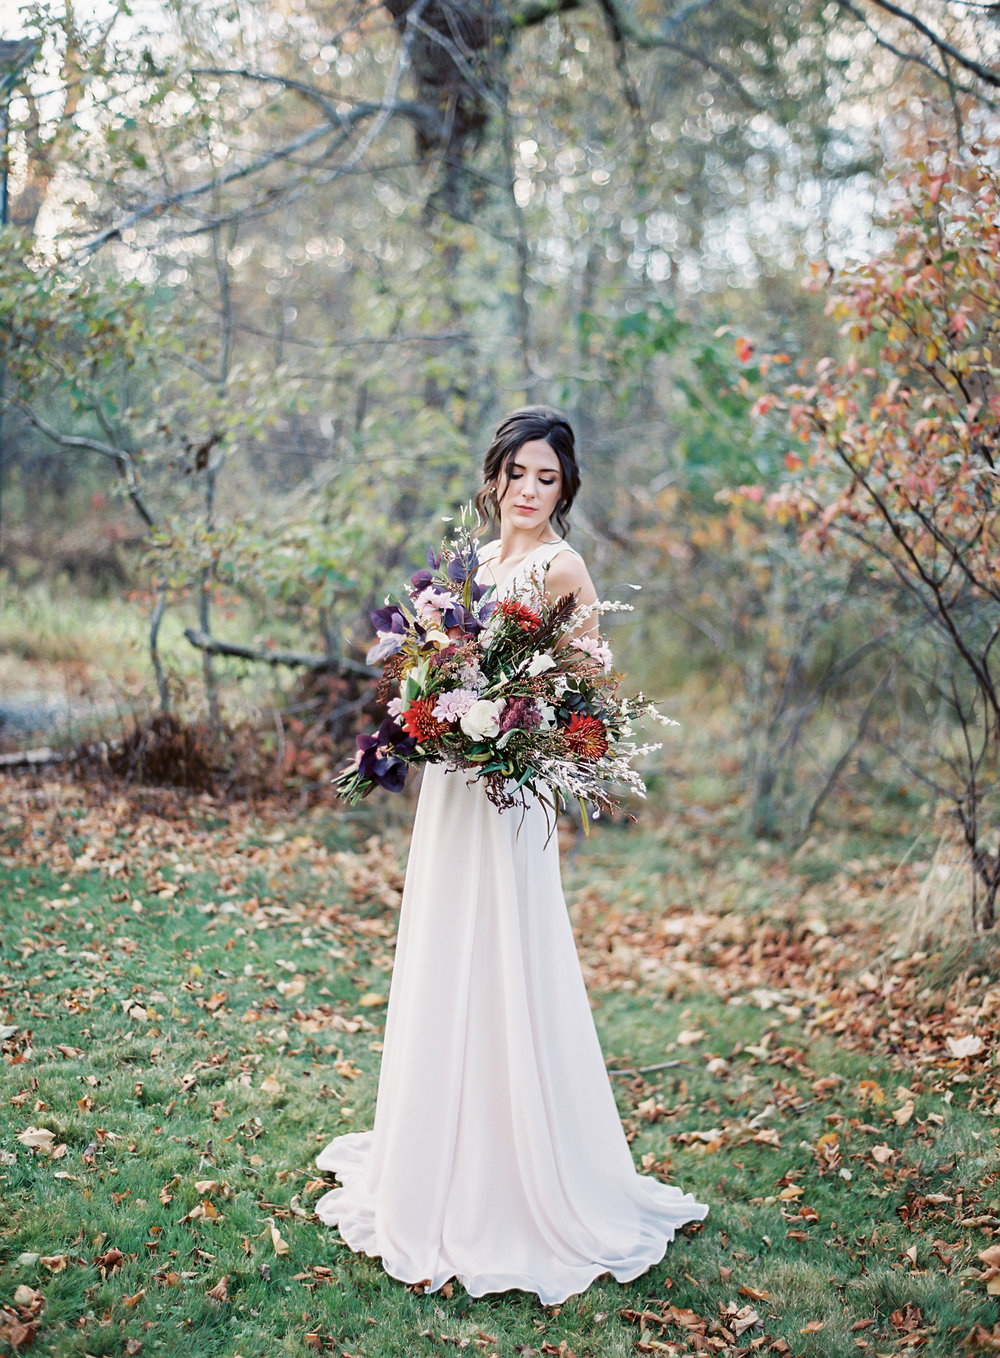 Jacqueline Anne Photography - Forest Editorial - Autumn editorial ON FILM-43.jpg